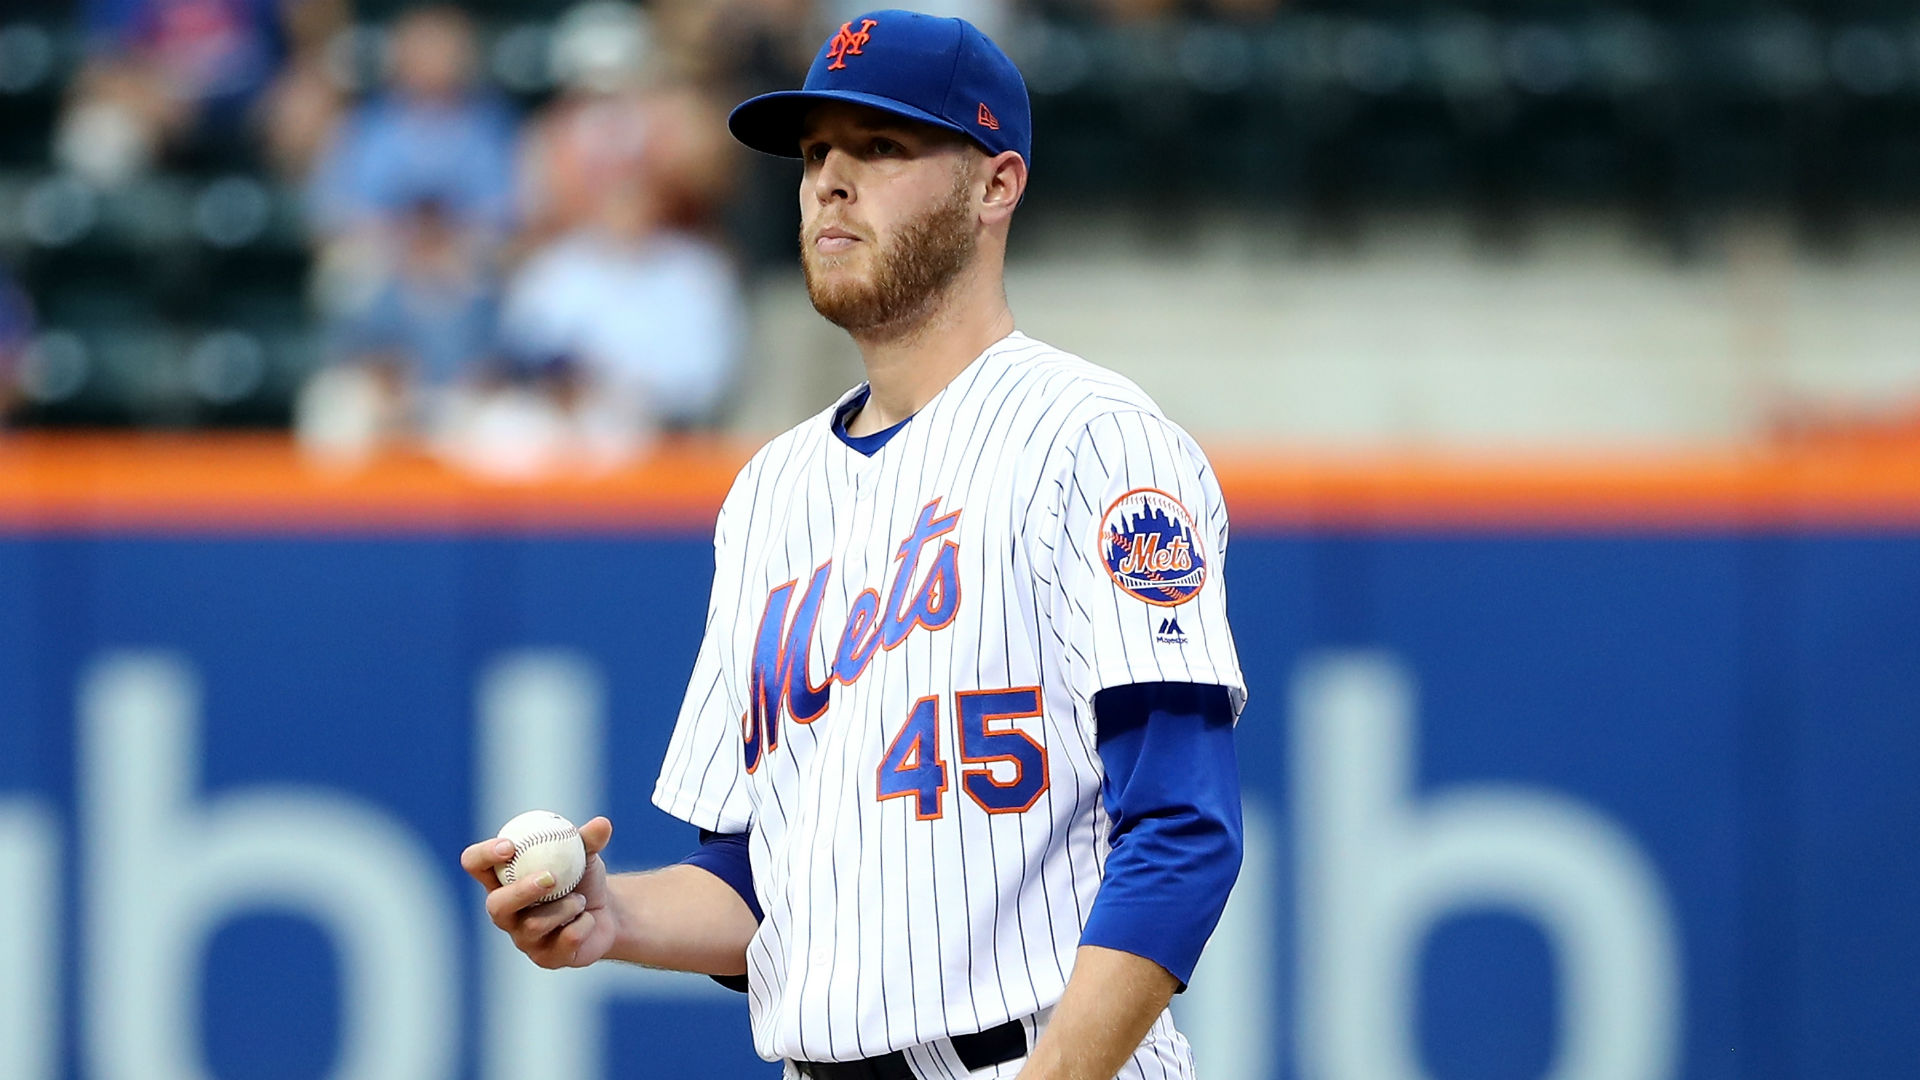 Mets' Zack Wheeler done for season: What's next for injured starter?